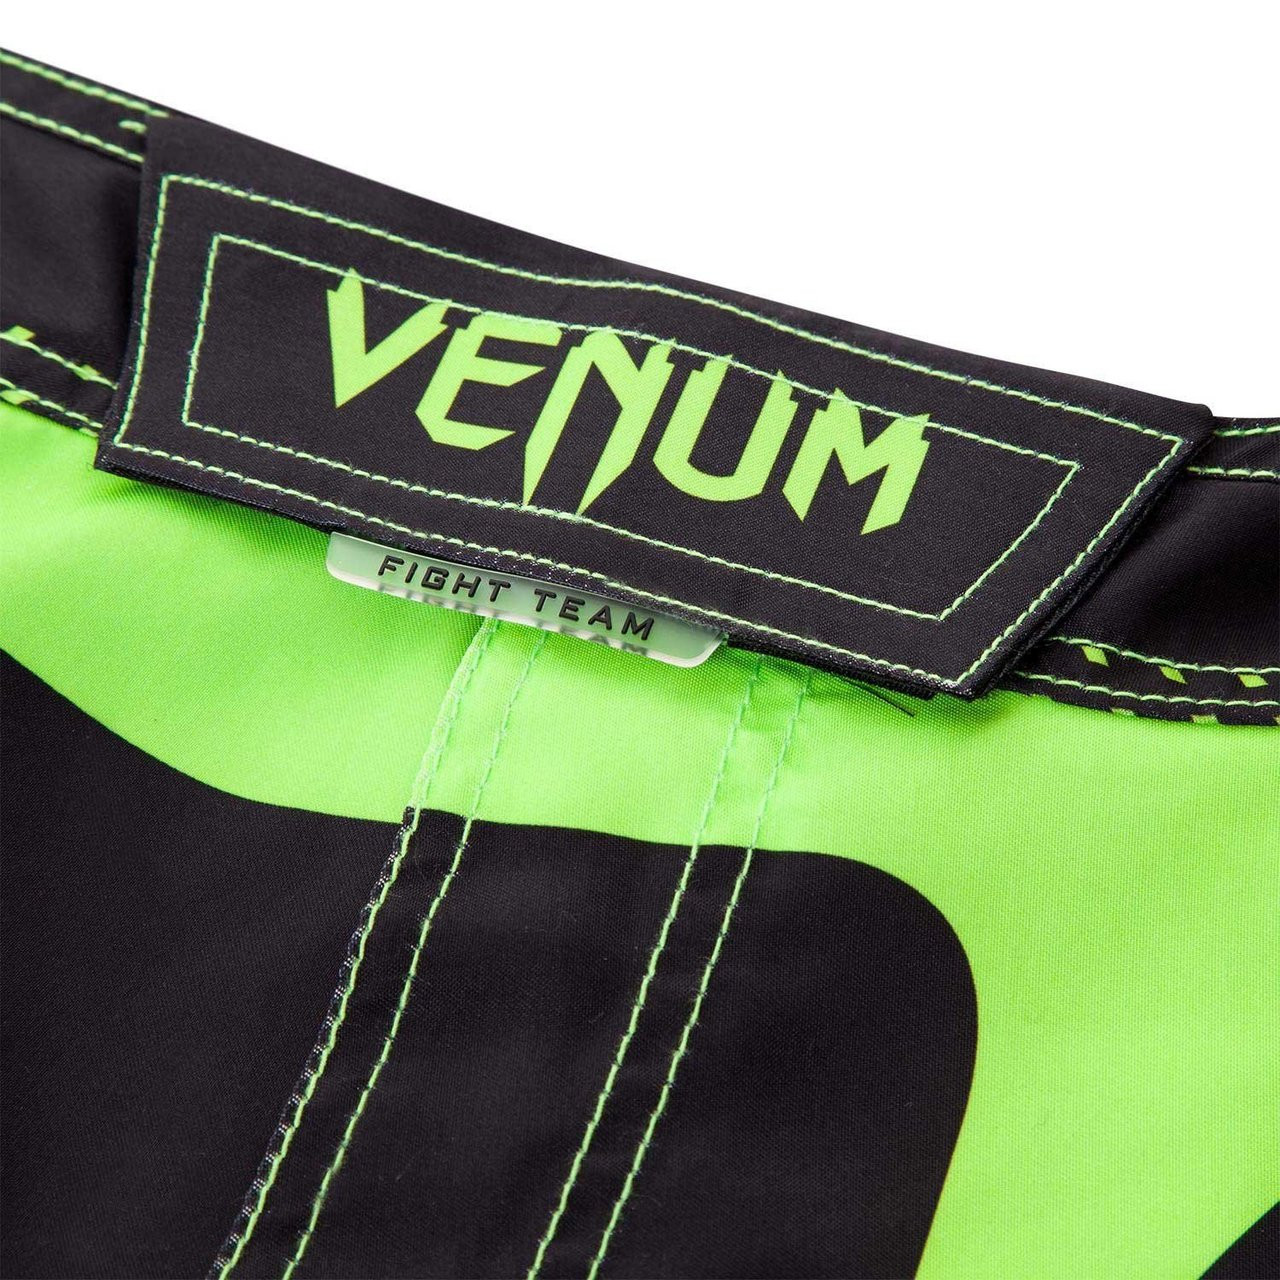 Closing of the Venum Hurricane Fight Shorts now available at www.thejiujitsushop.com Bring black and green shorts to take on the world.   Enjoy Free Shipping from The Jiu Jitsu Shop today!